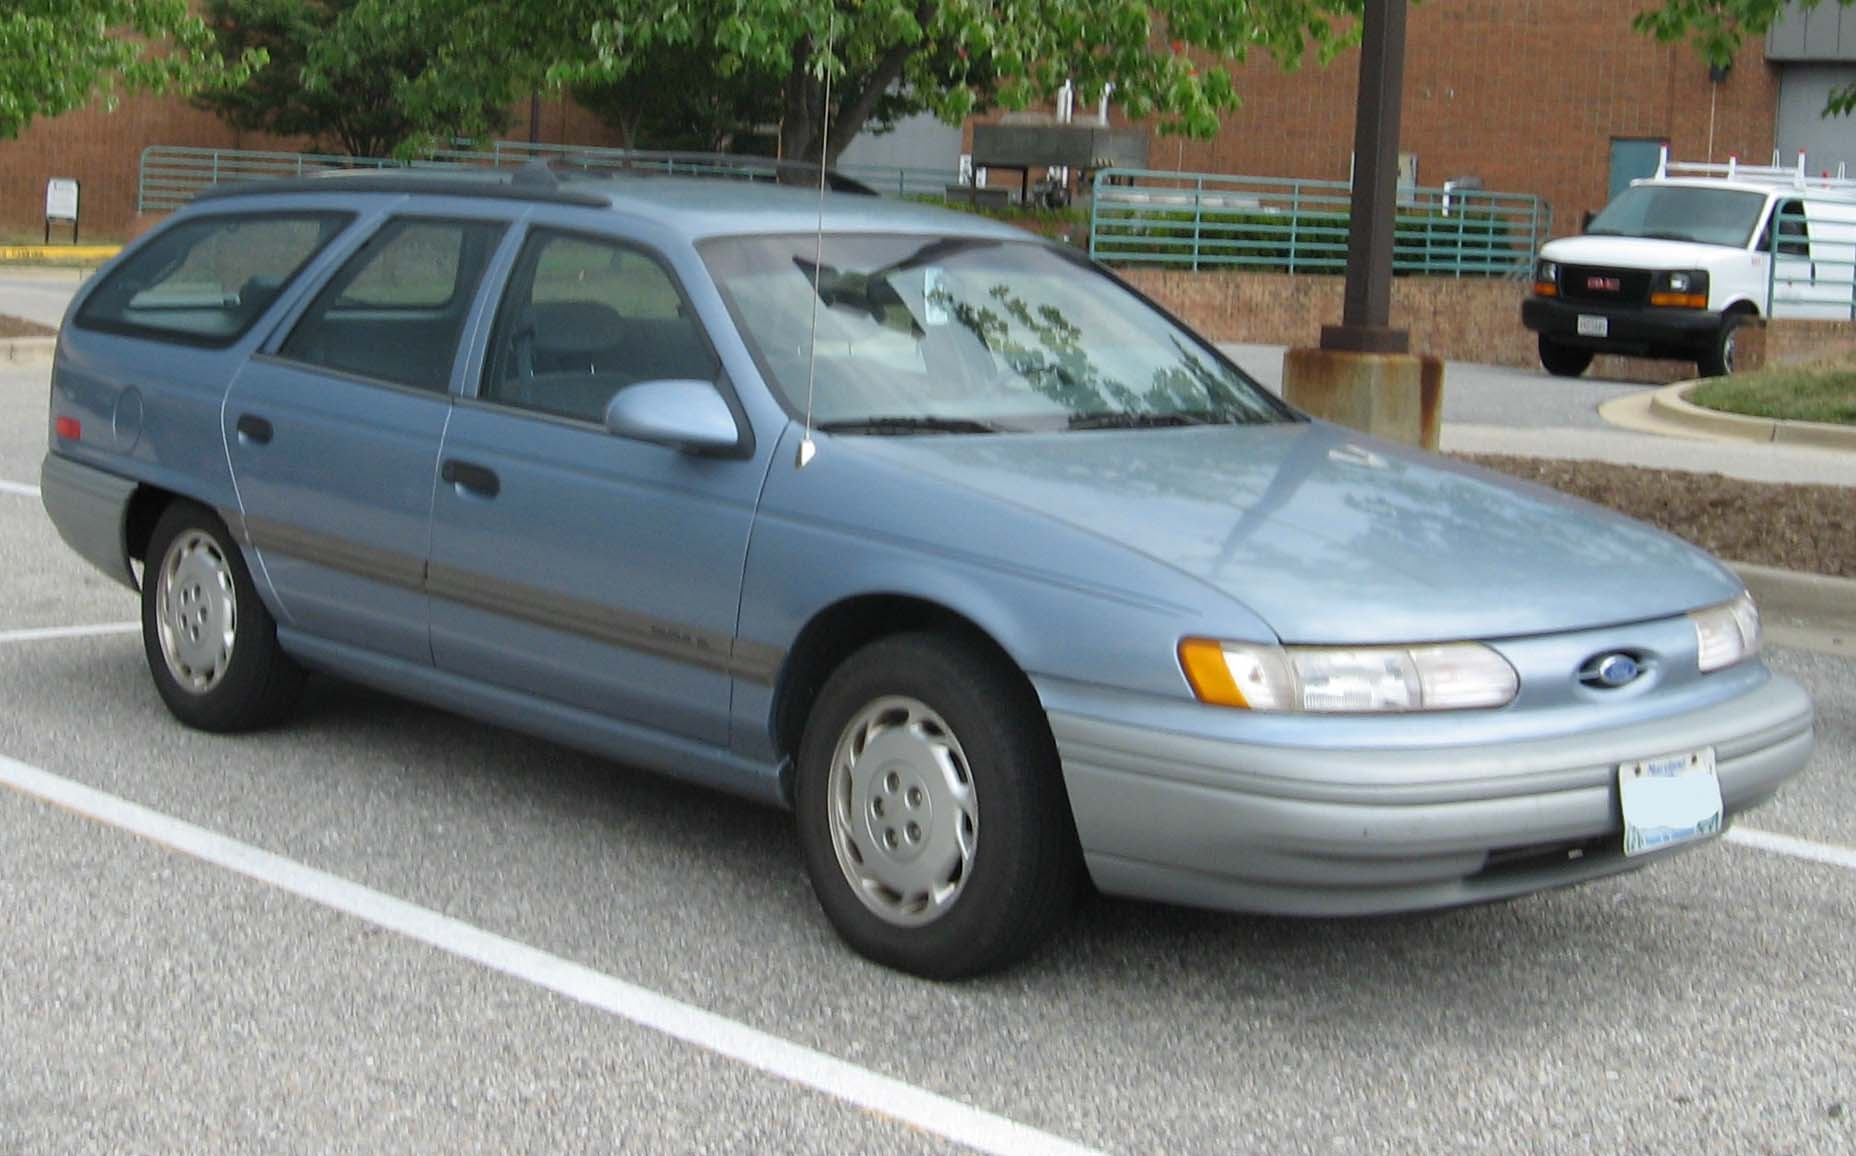 1990 Ford Taurus >> File:2nd-Ford-Taurus-GL-wagon-front.jpg - Wikimedia Commons